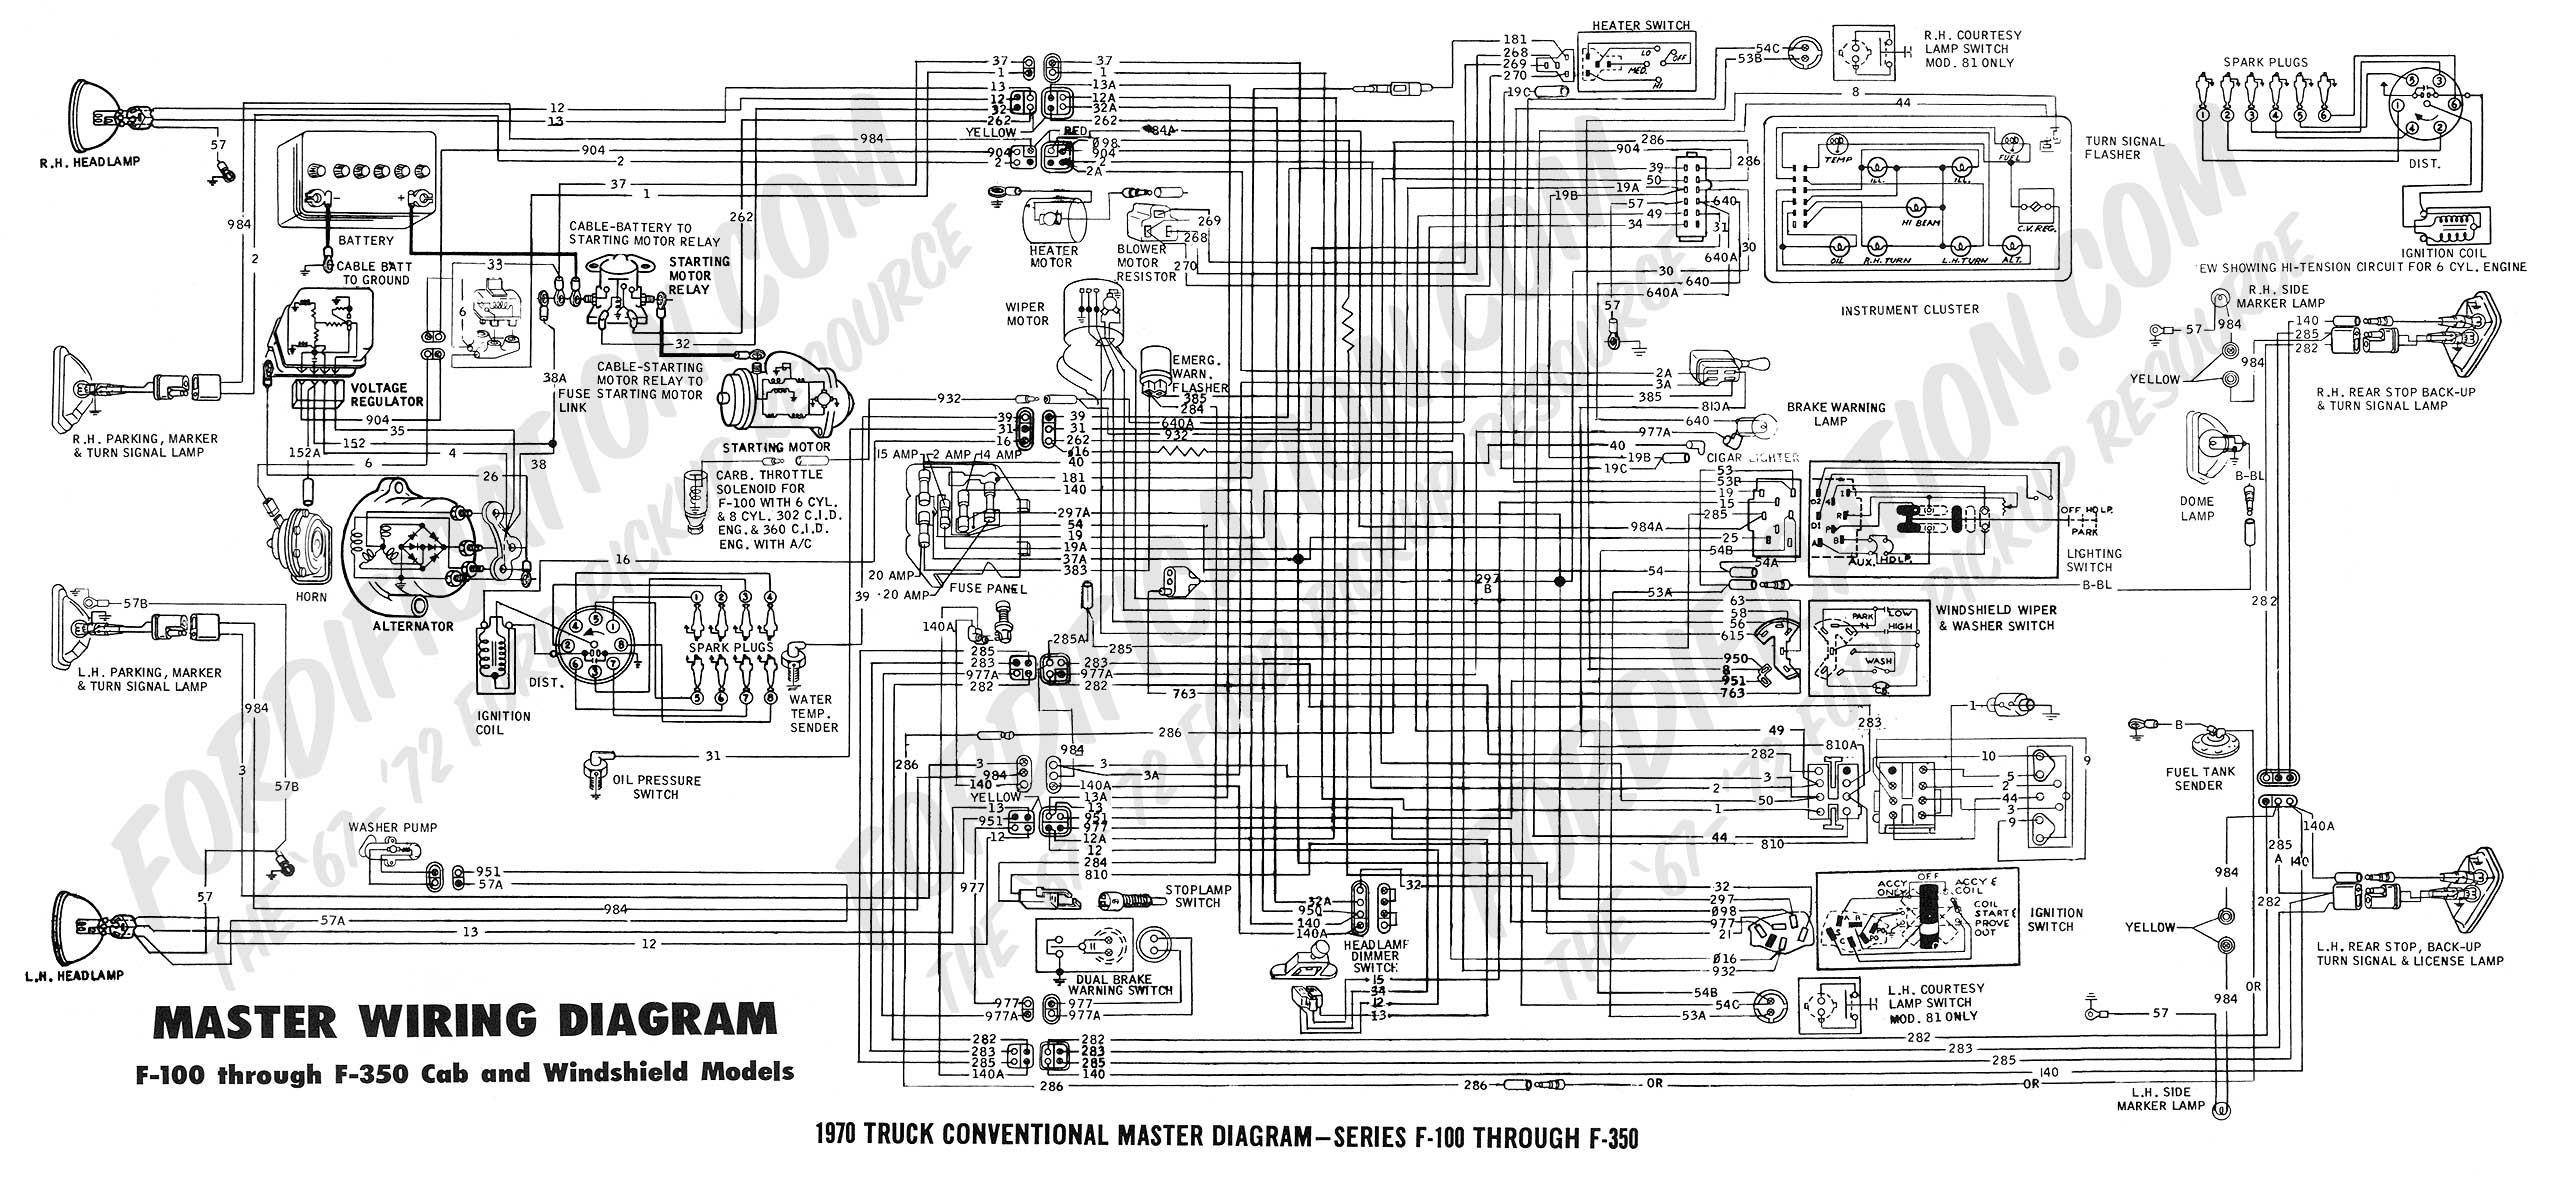 wiring diagram 70_master 1986 ford f150 wiring diagram 1986 ford bronco ii wiring diagram ignition switch wiring diagram 1988 ford f150 at pacquiaovsvargaslive.co